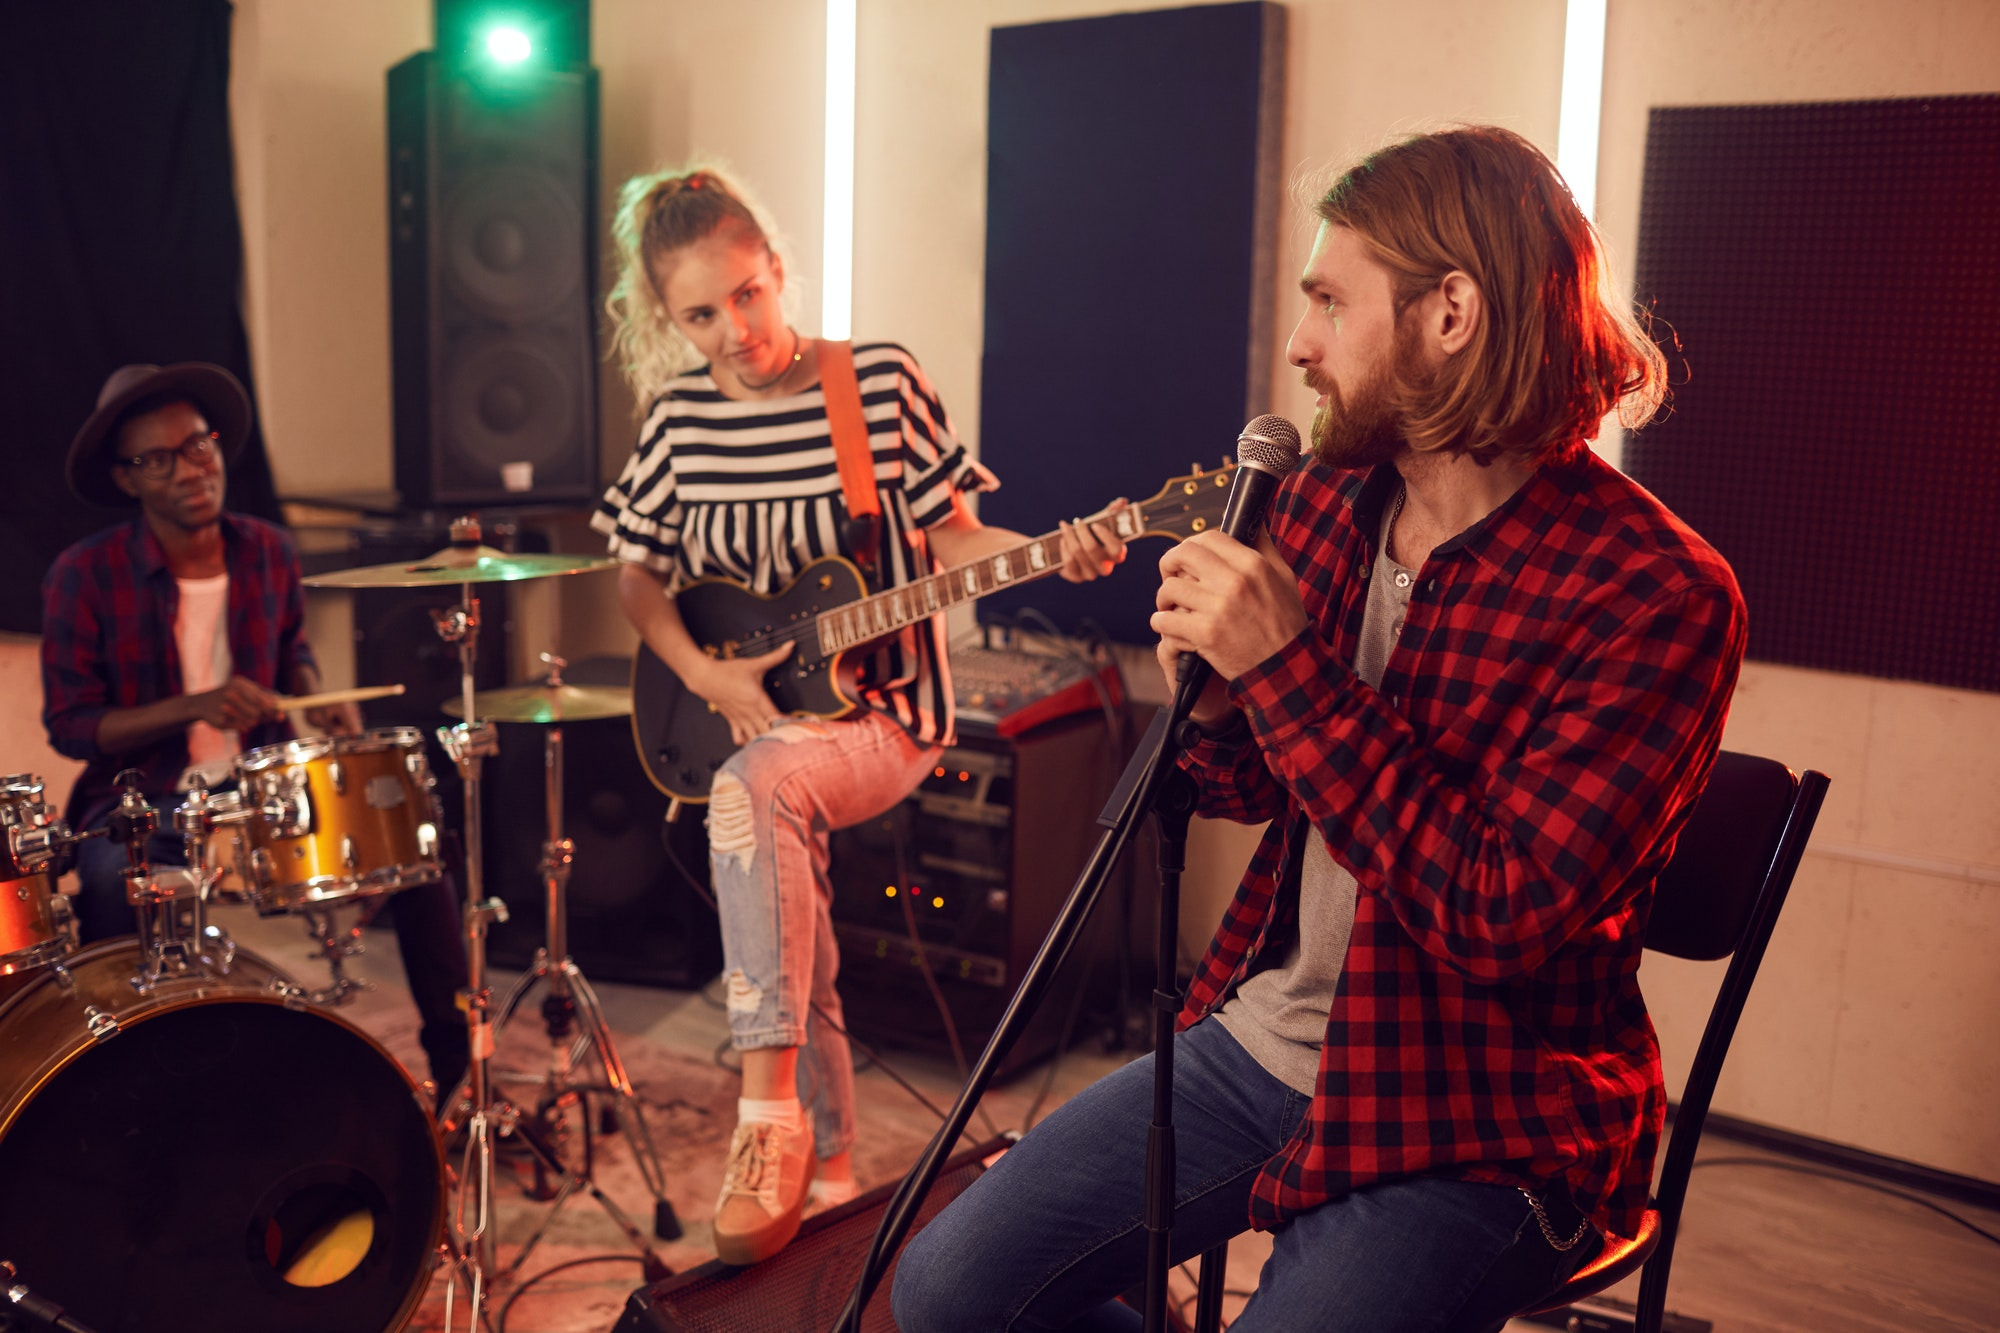 Group of Young People Playing Music in Studio